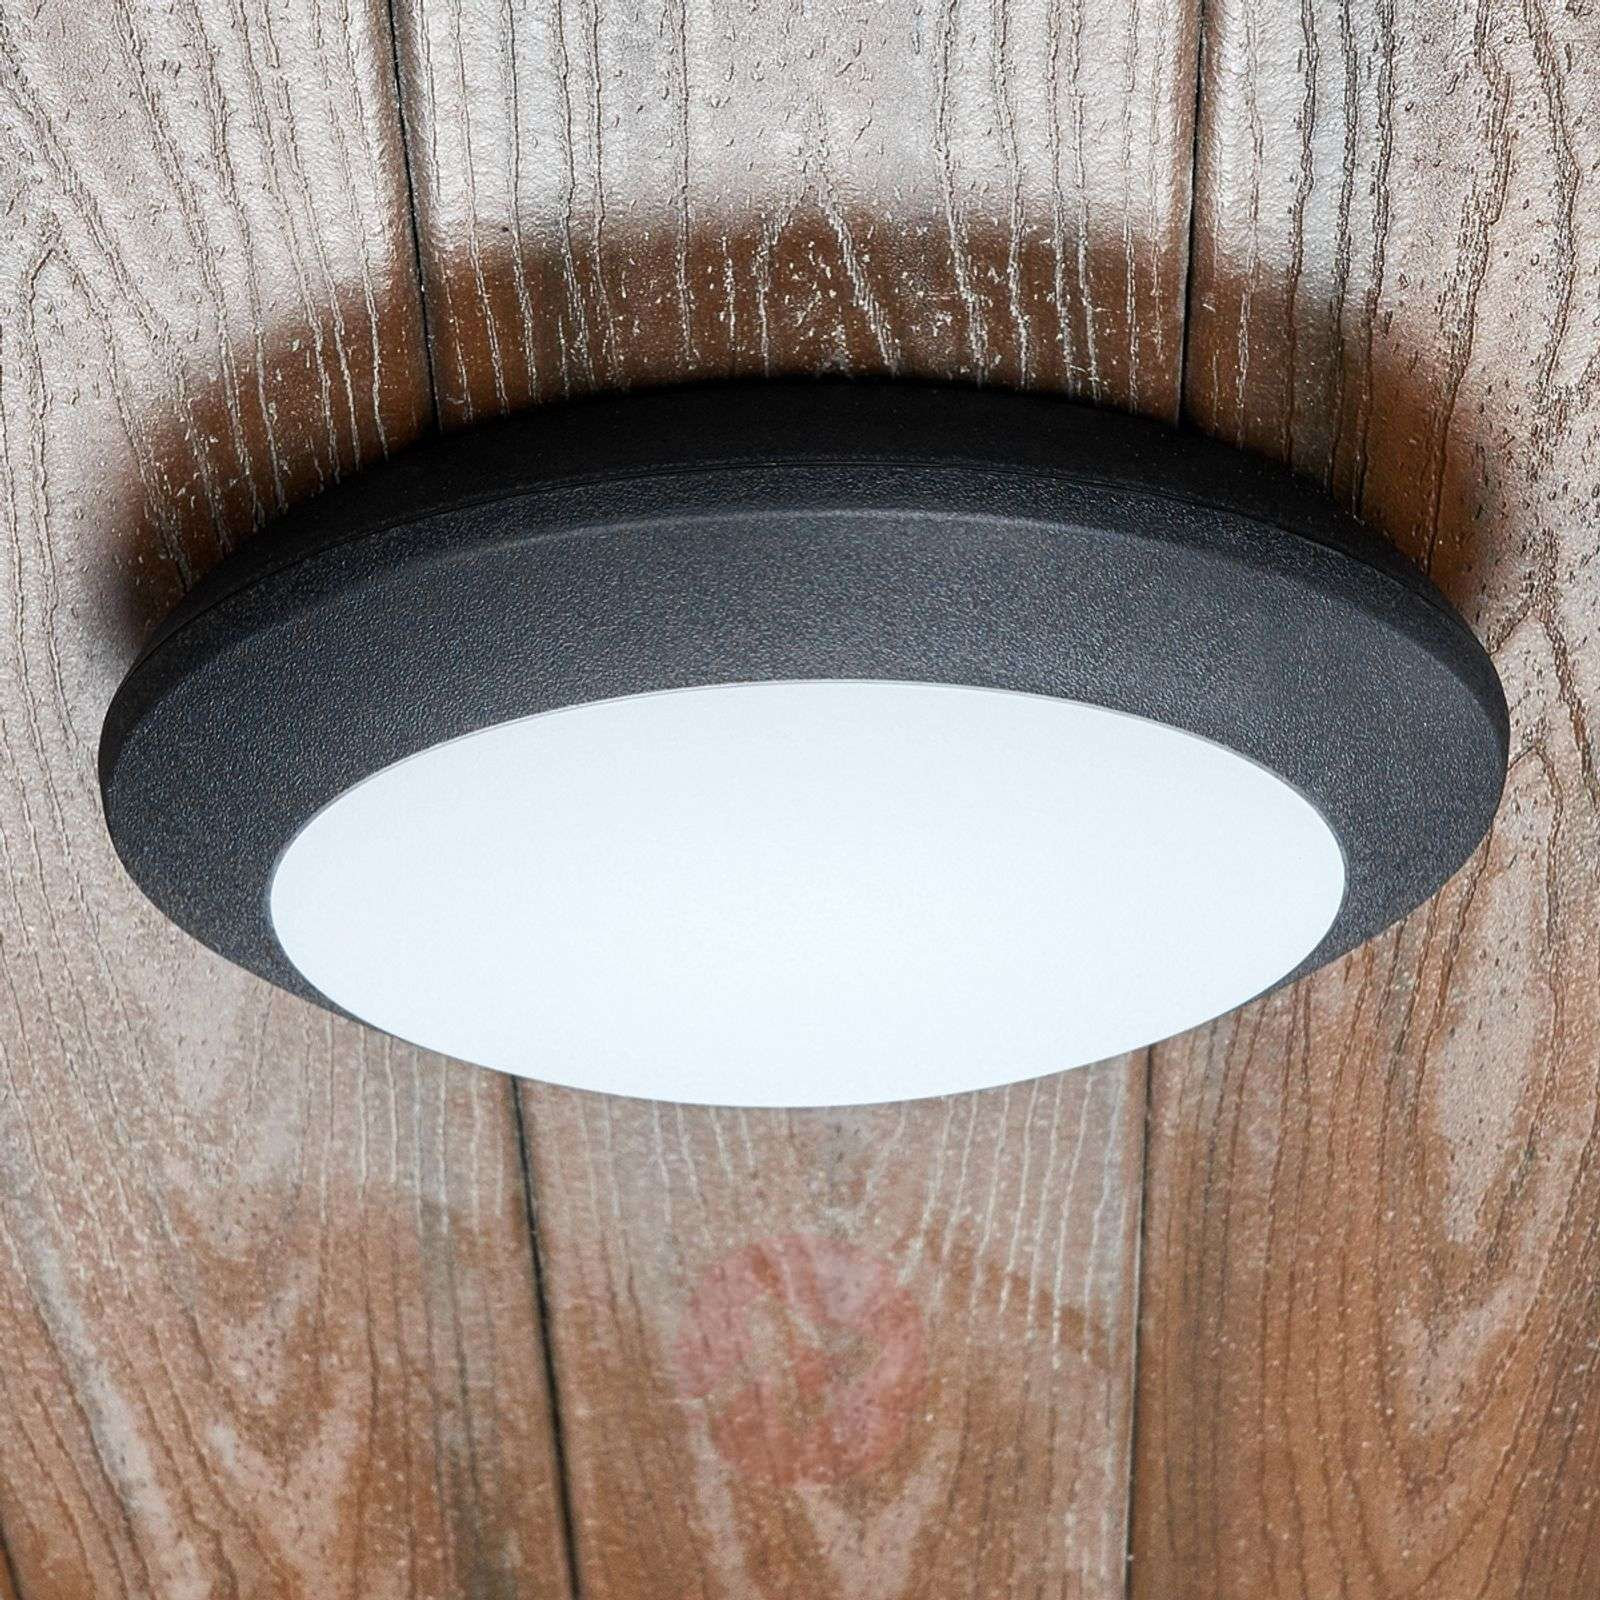 LED outdoor ceiling light Berta, black, 11W 3,000K-3538055-05